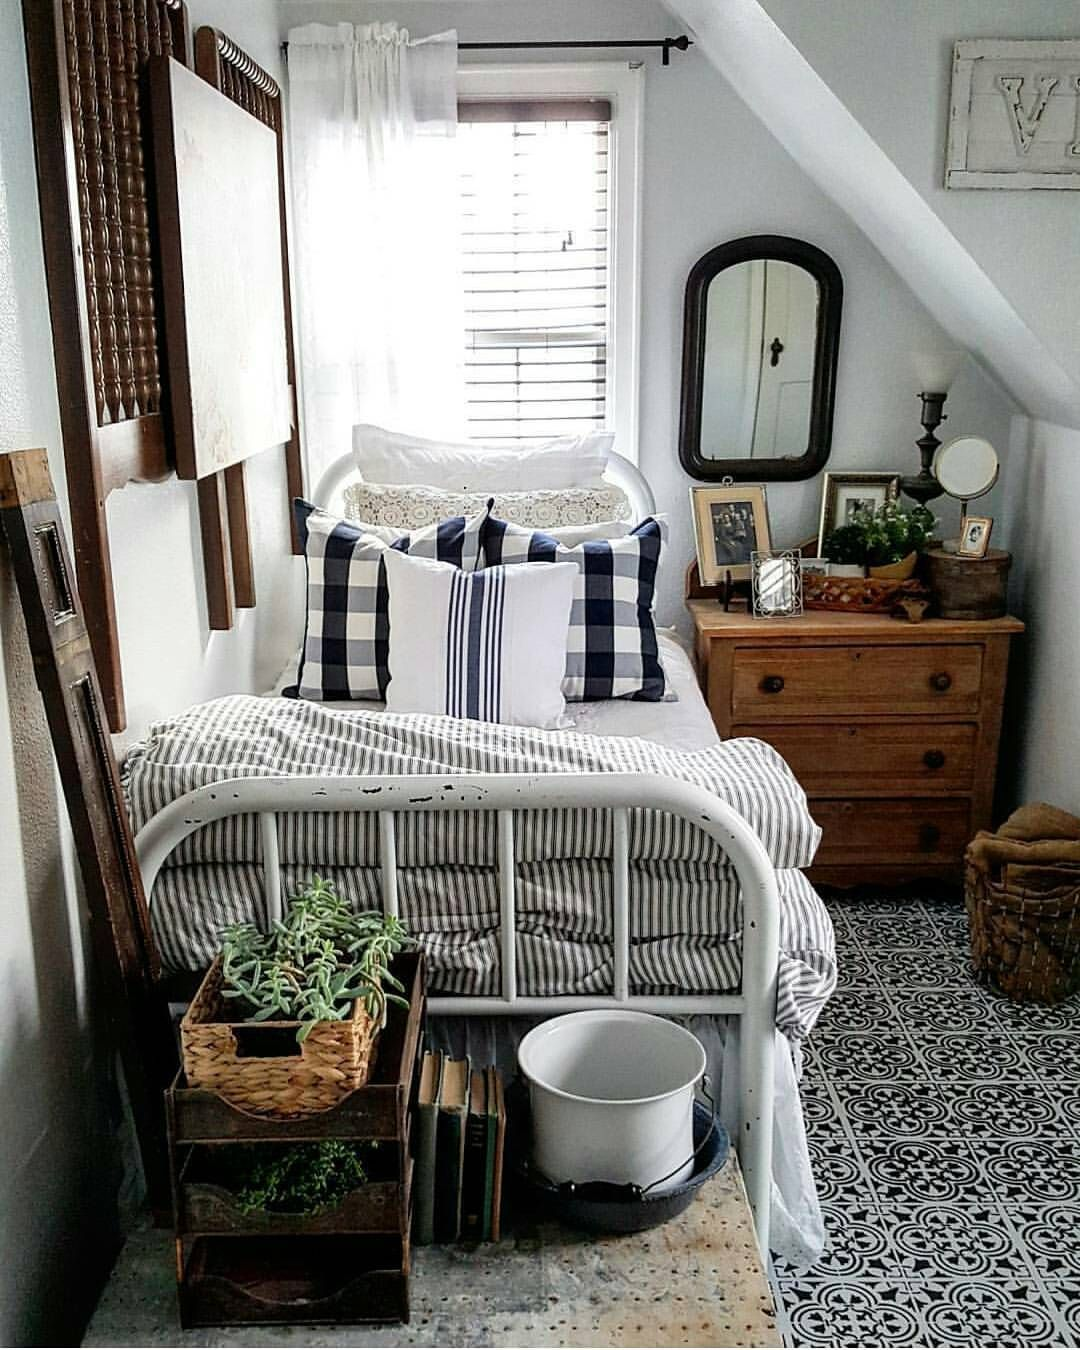 25 Small Bedroom Ideas That Are Look Stylishly Space Saving: Pin By Cydnee Gramse On For The Home